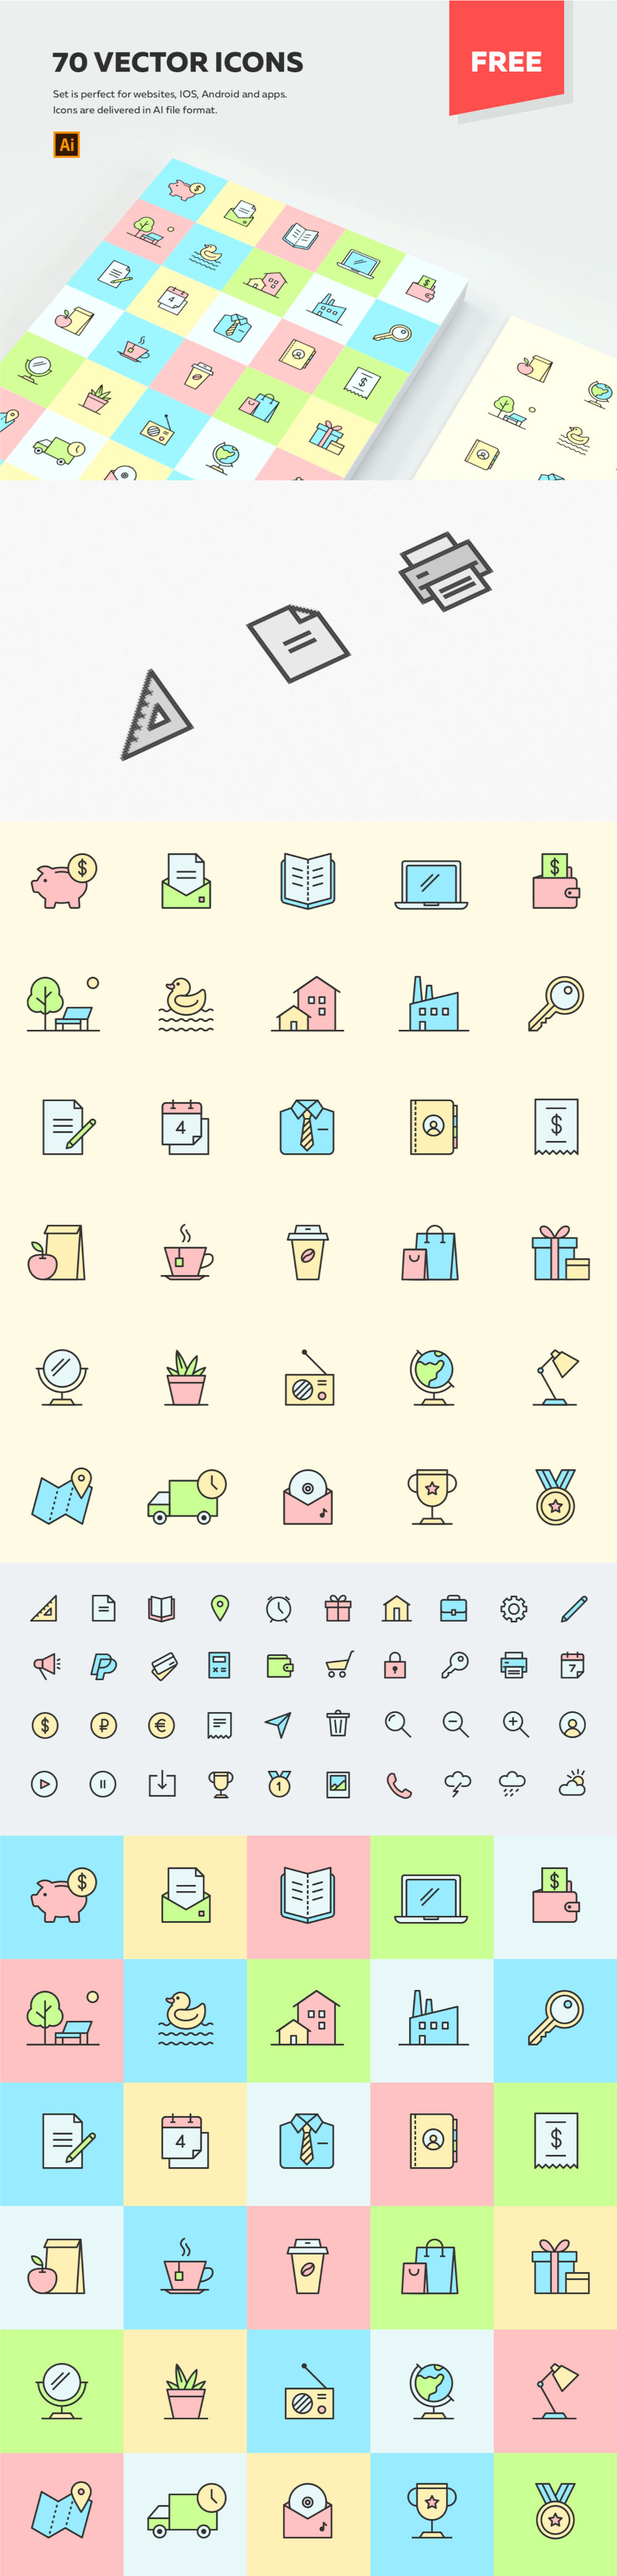 Free 70 Multipurpose Vector Icons Preview